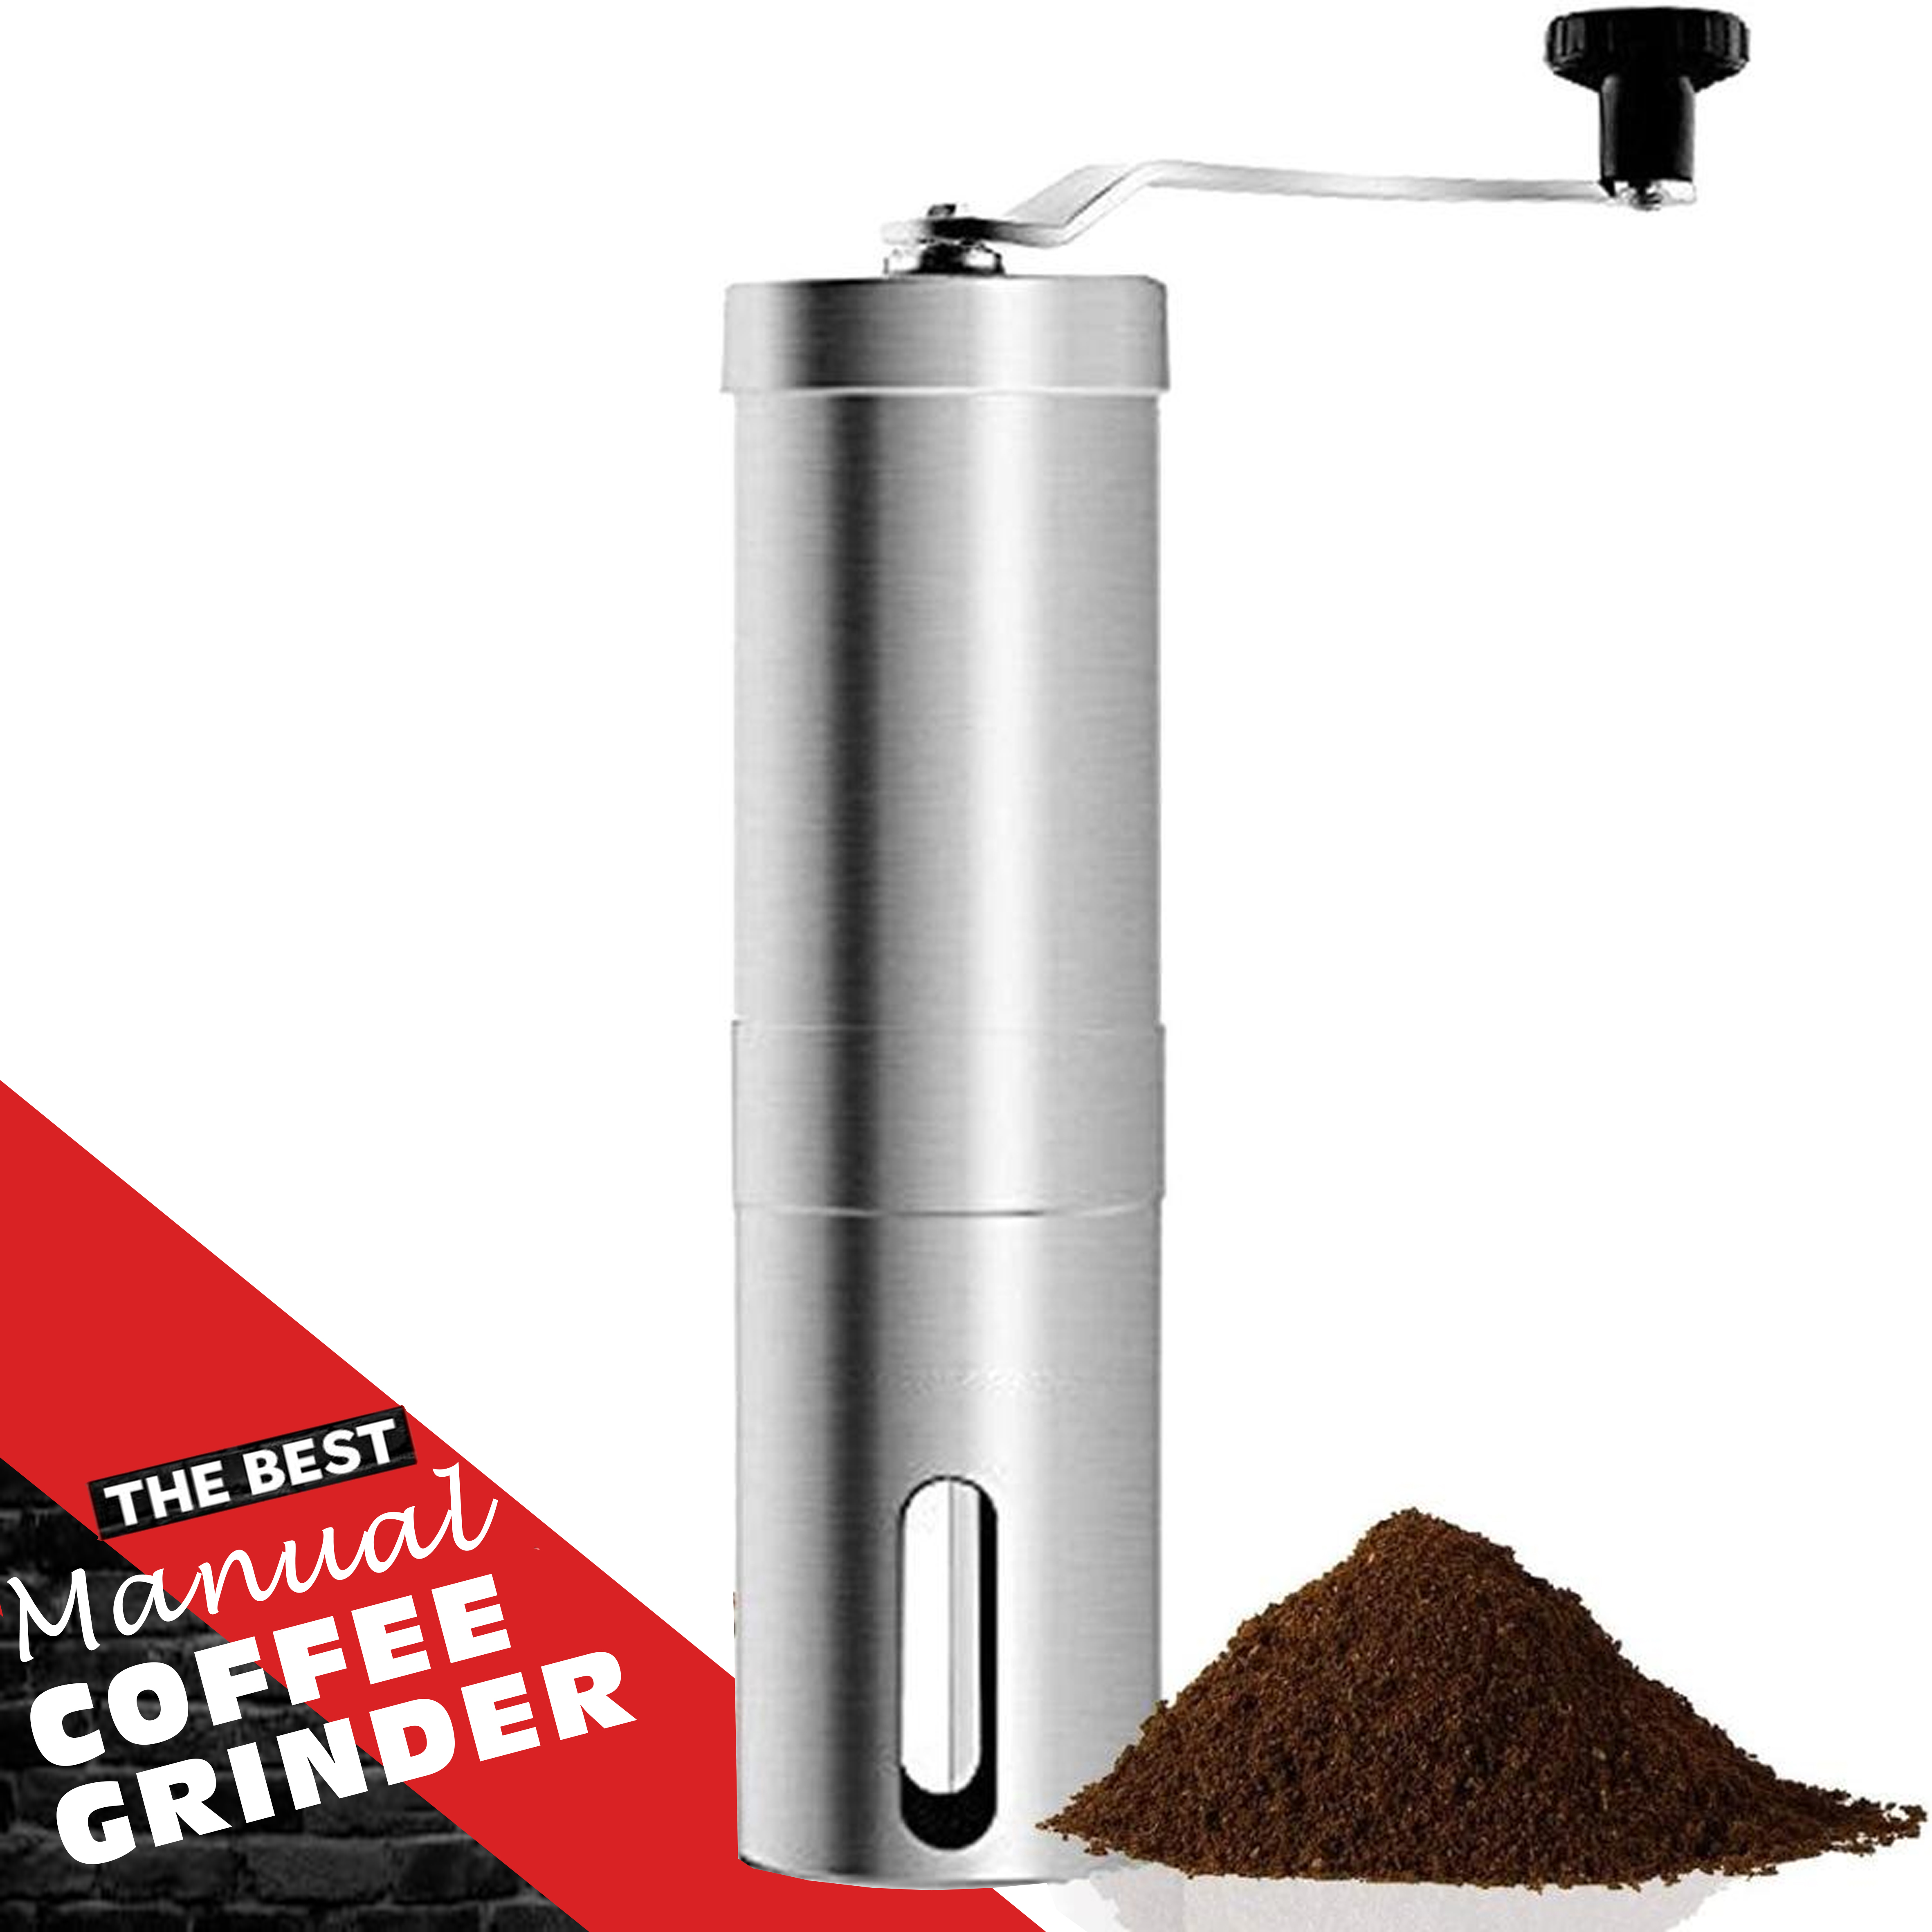 Premium Quality Manual Coffee Grinder. Stainless Material